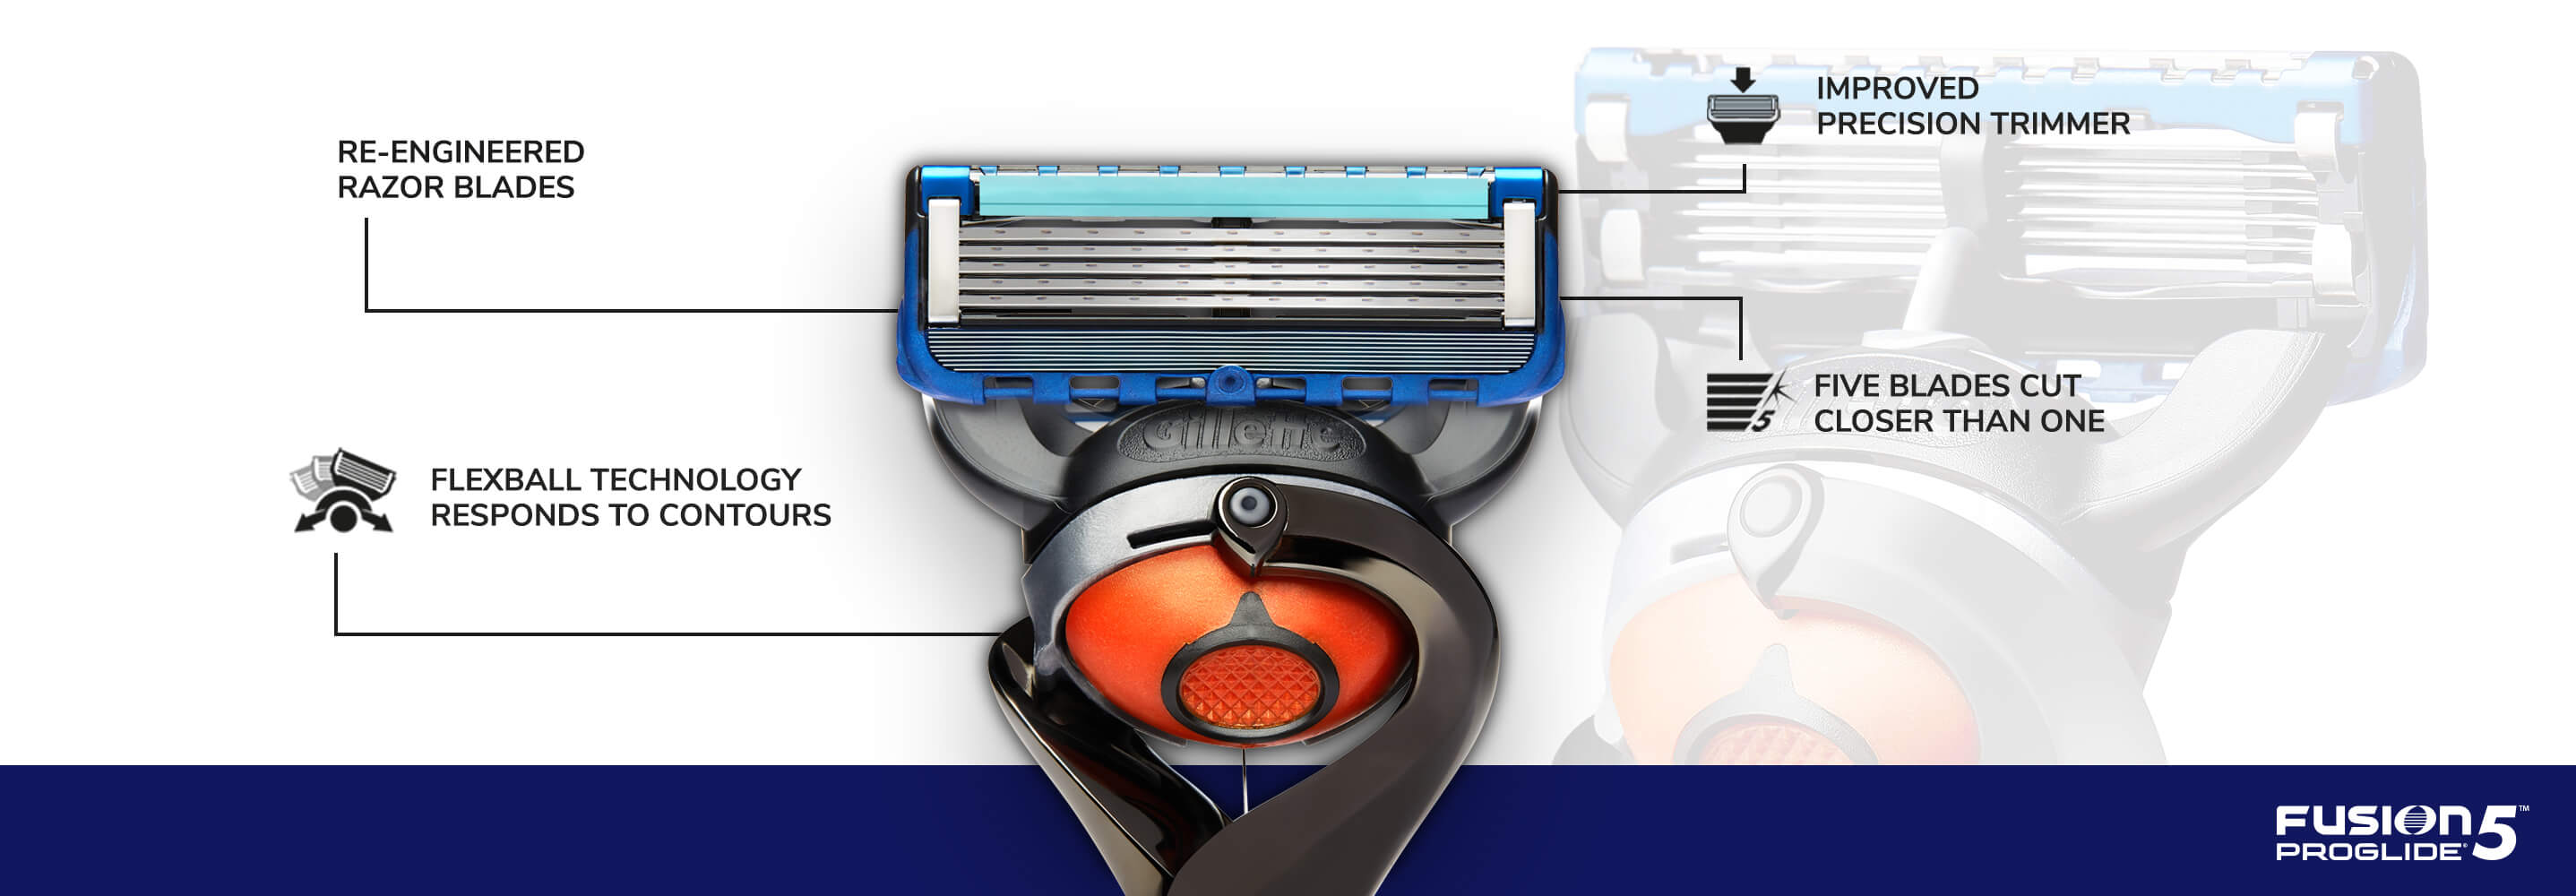 Illustration of Gillette Fusion5 Proglide with improved precision trimmer, 5 re-engineered blades and FlexBall technology